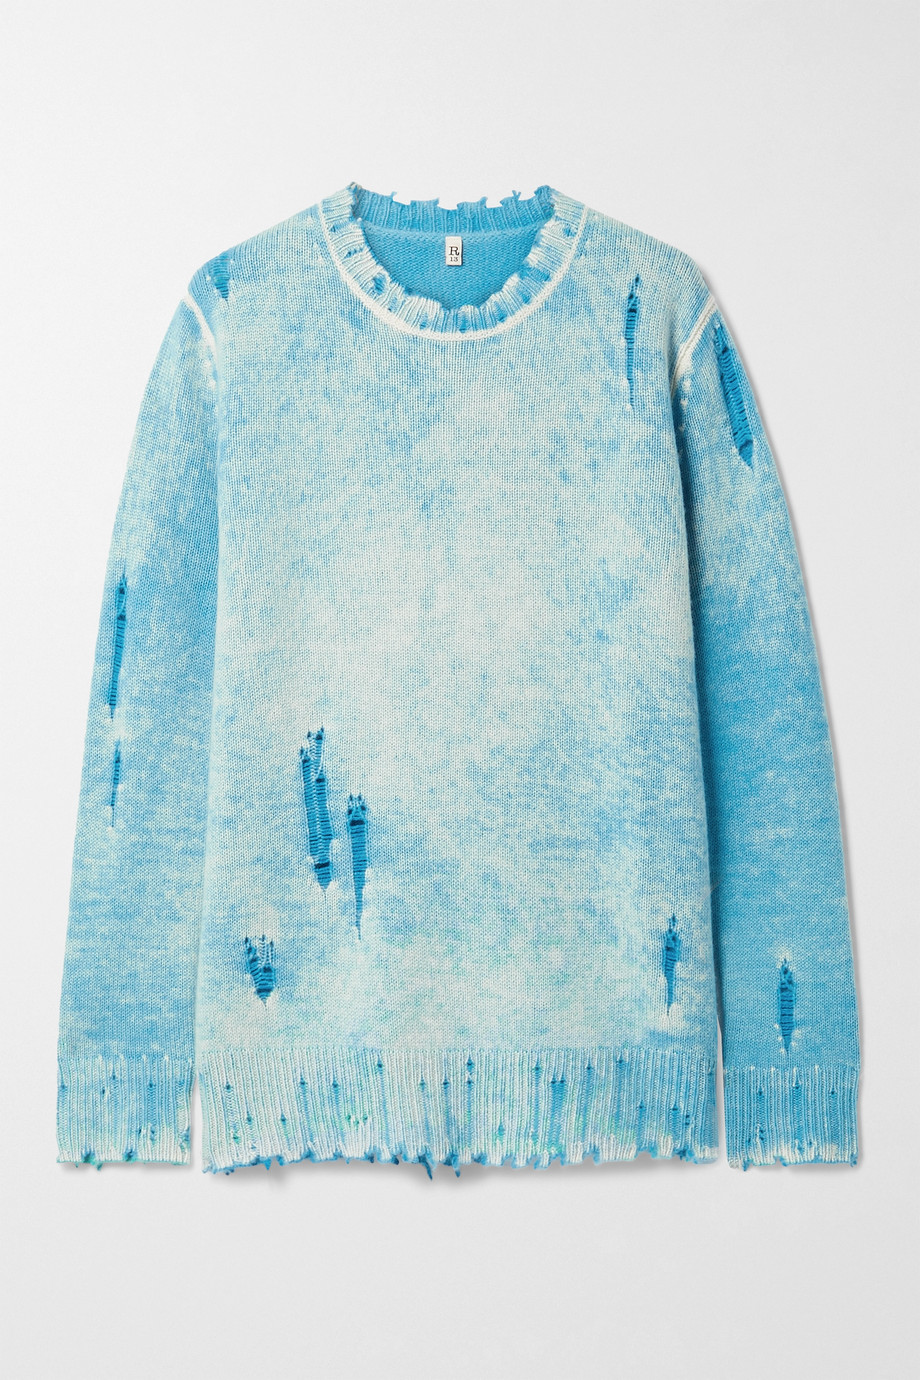 R13 Kaschmirpullover in Distressed-Optik